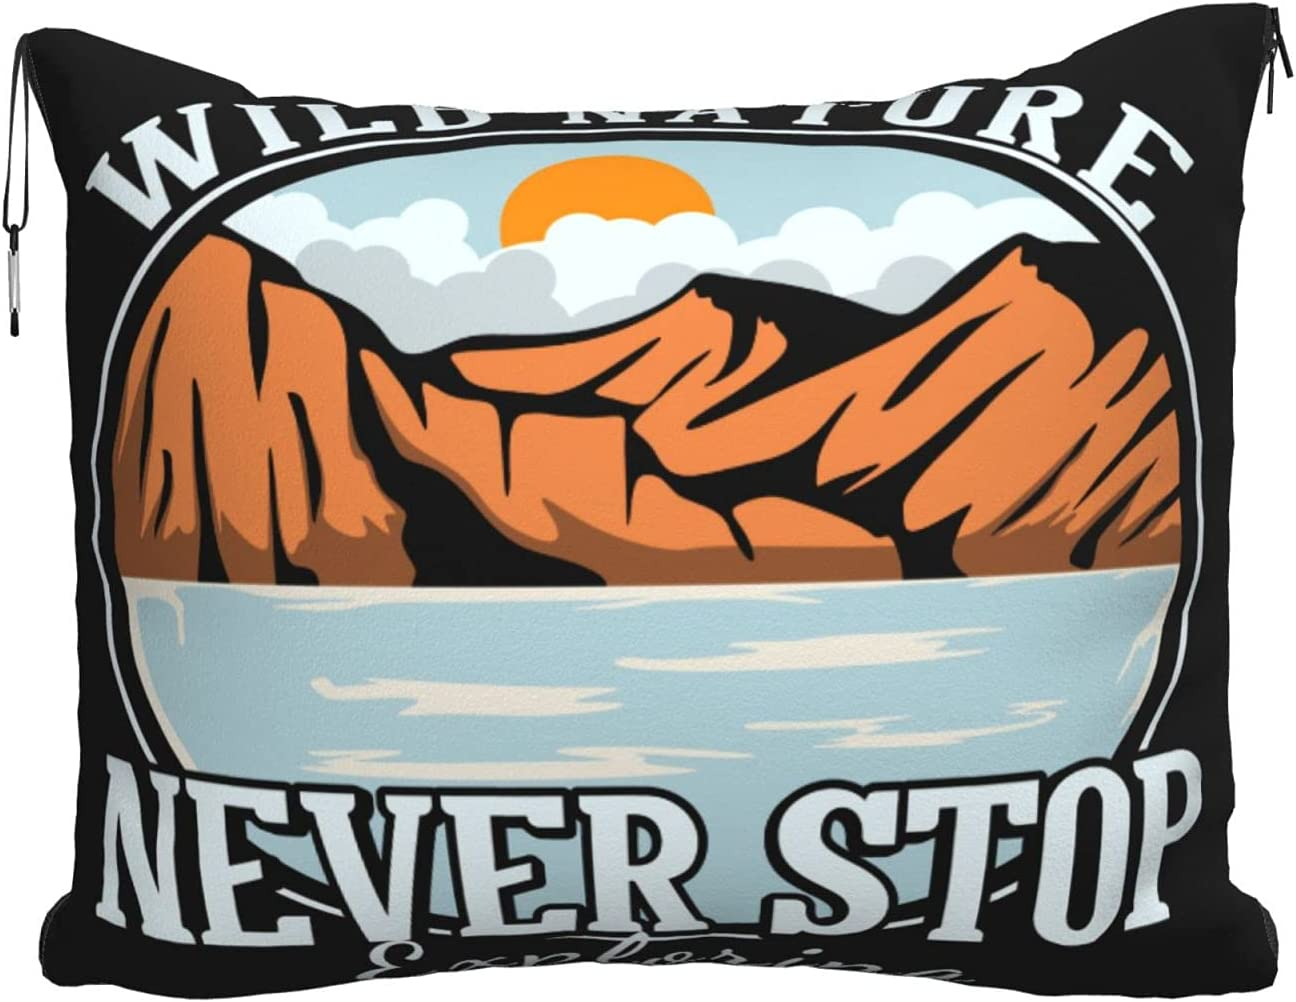 LOSOTIME Wild Nature Never Stop Travel Super Pillow Blanket Soft Max 46% Ranking TOP15 OFF